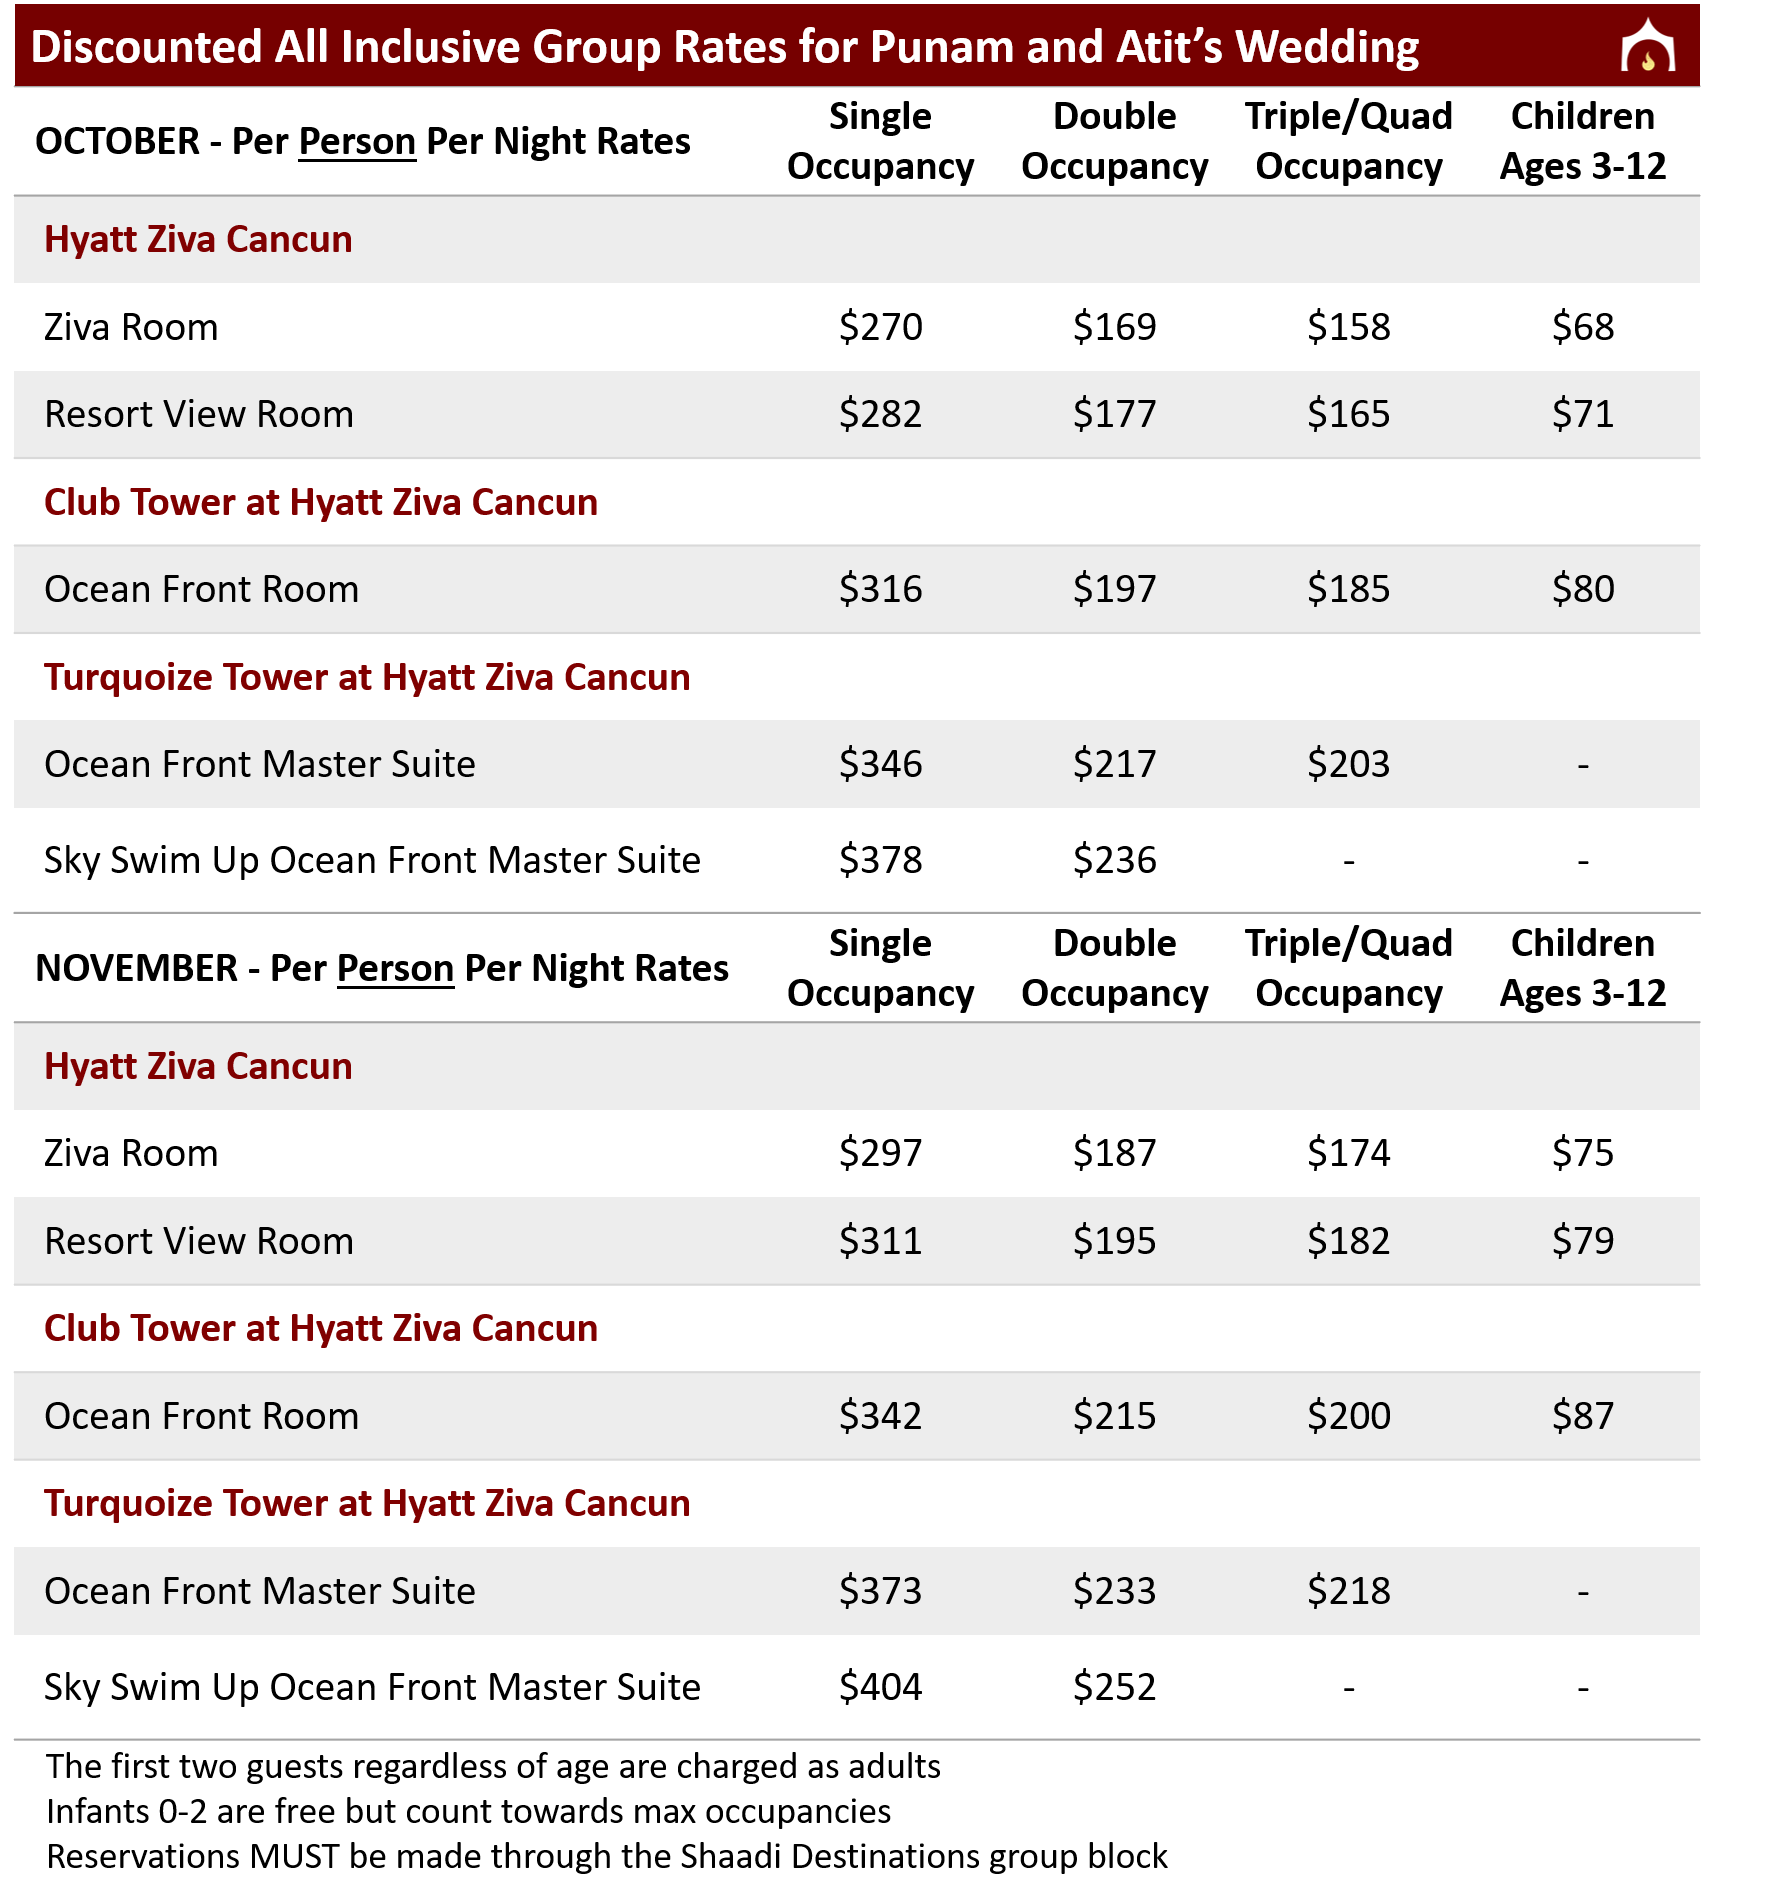 Discounted Group Rates for Natasha and Hardeep - Updated.png